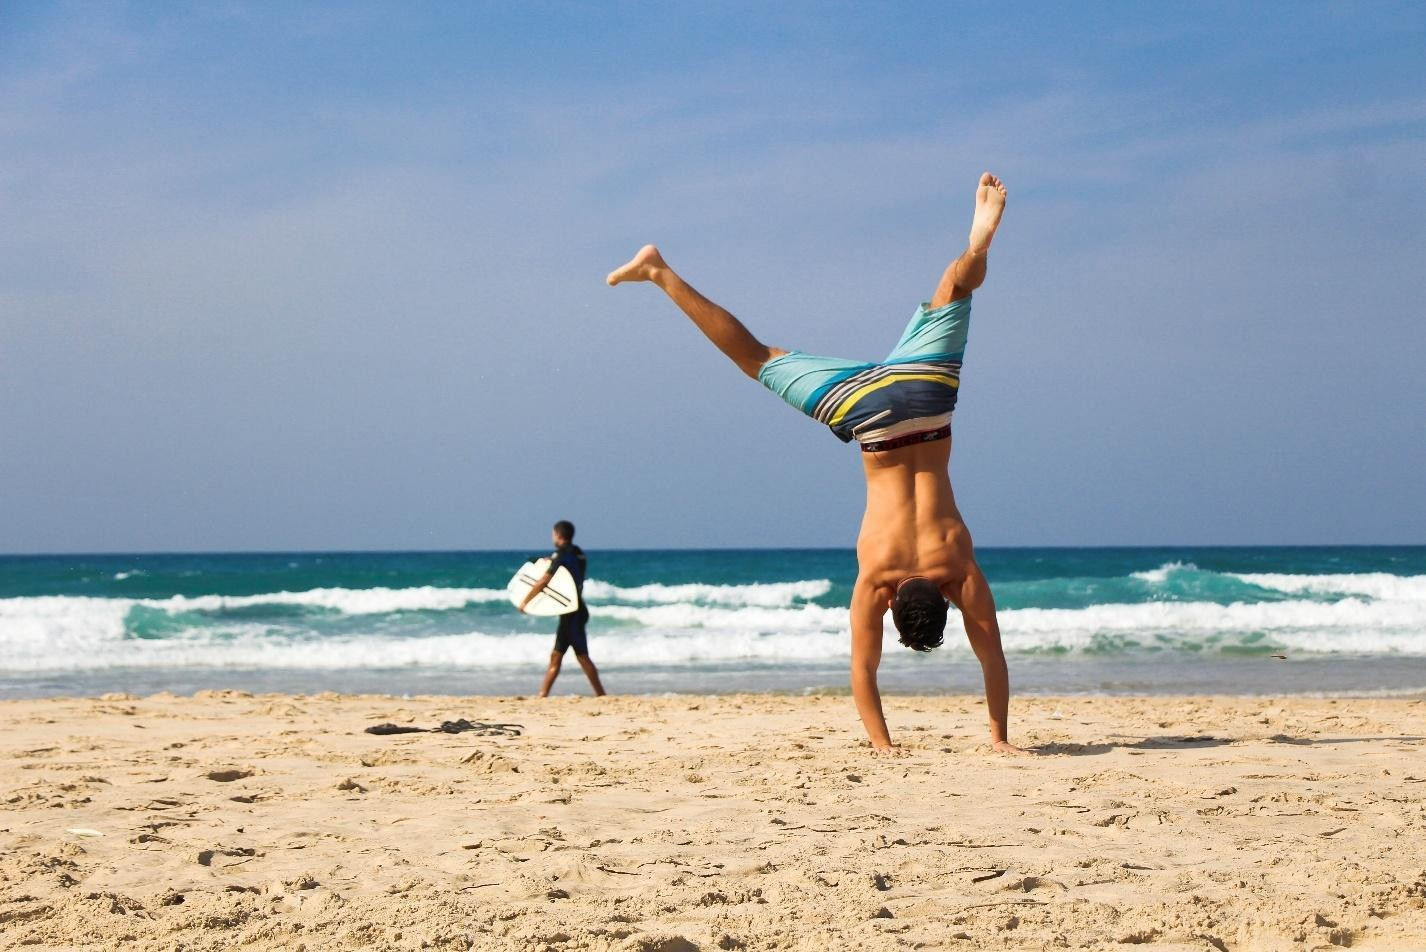 a man is standing upside down on his hands on the beach